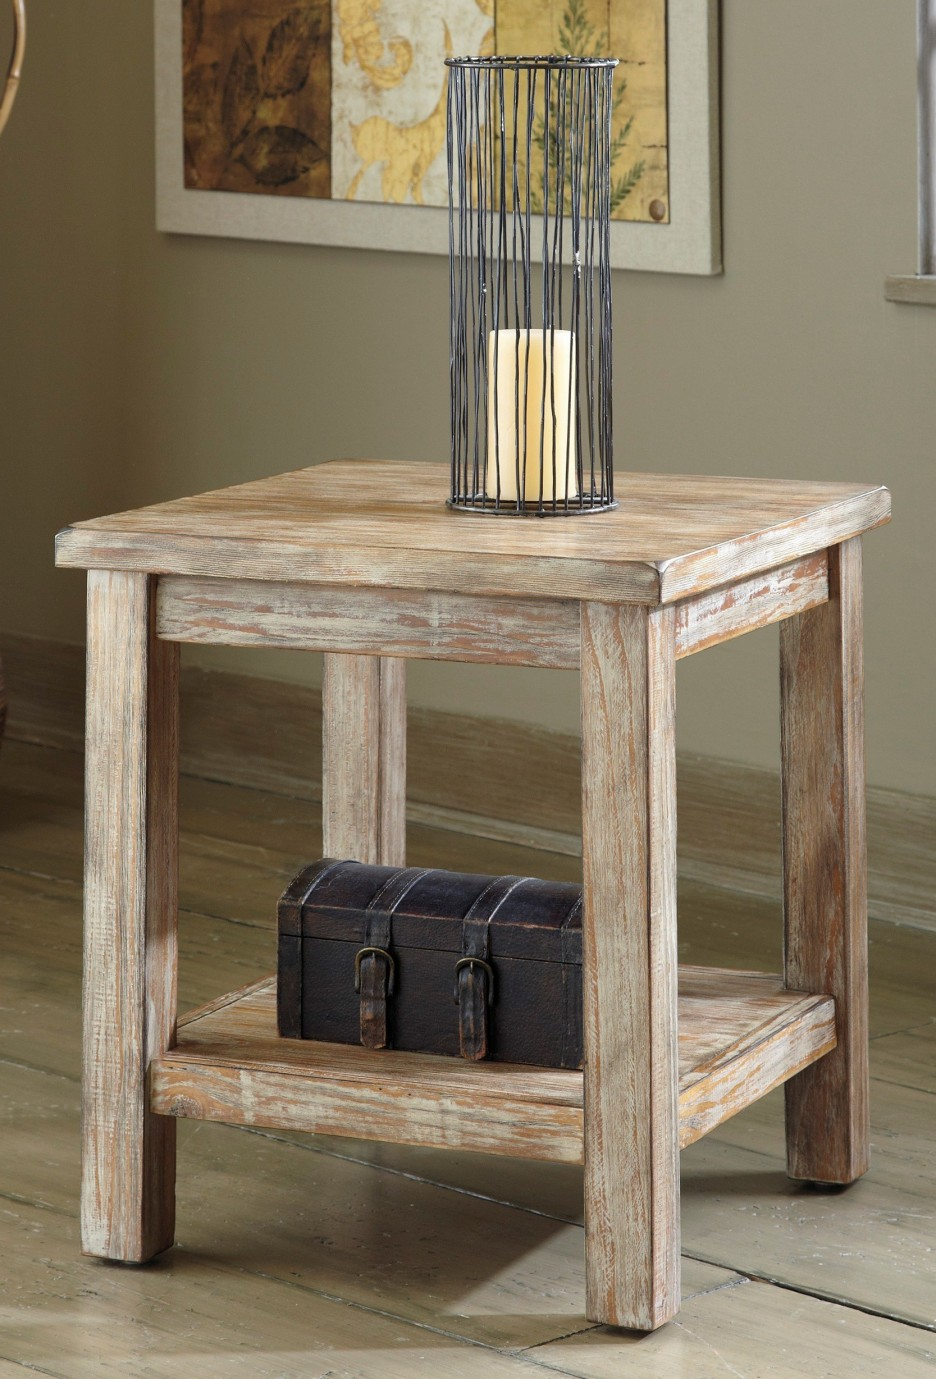 living room accent teak wood end table design idea with square wooden side tier round black metal mission candle holder finish jewelry storage box lid chair lighting mackenzie